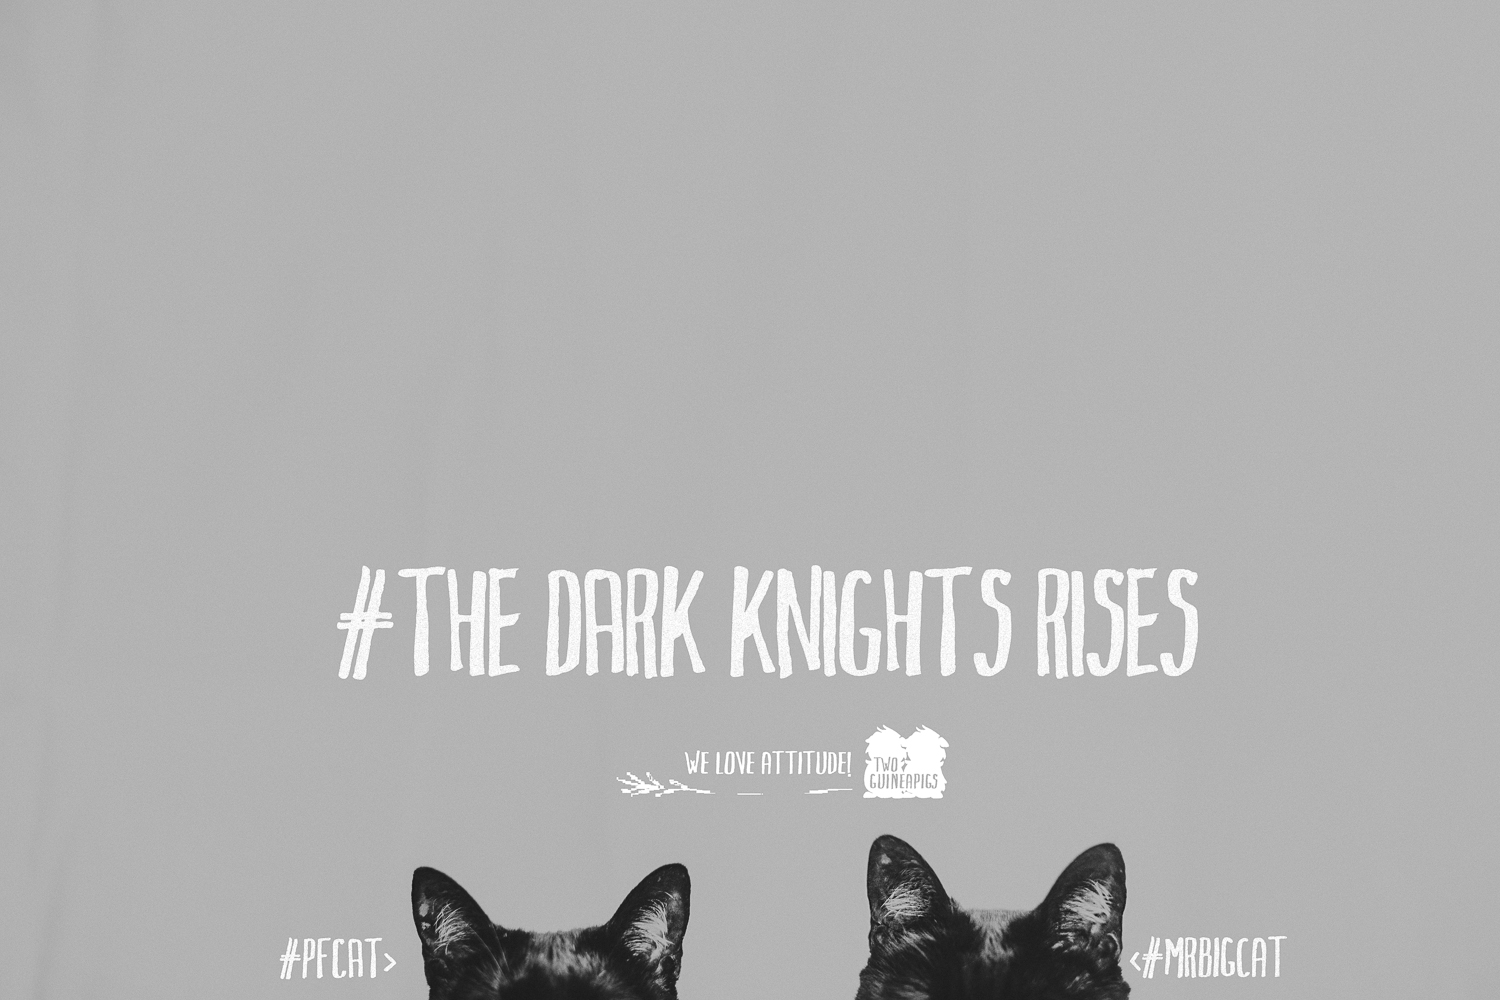 twoguineapigs_pet_photography_black_cats_dark_knights_rising_animals